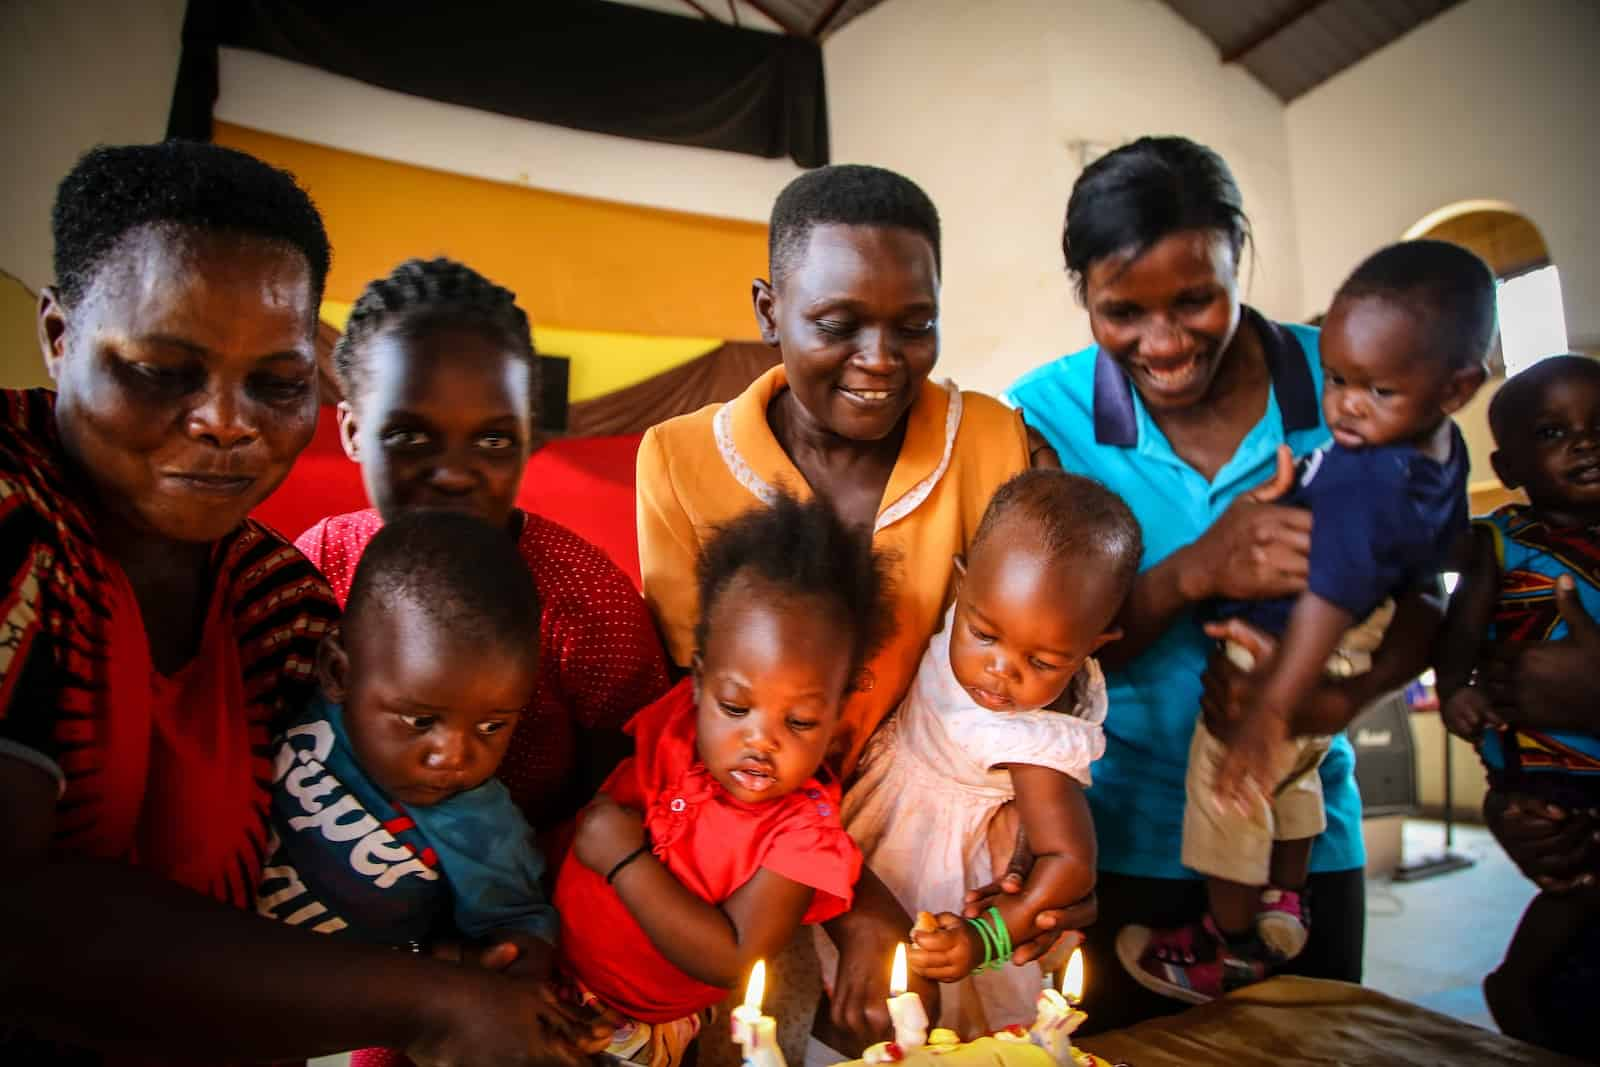 A group of woman holding babies leans over a cake with candles lit. Everyone is looking at the cake.